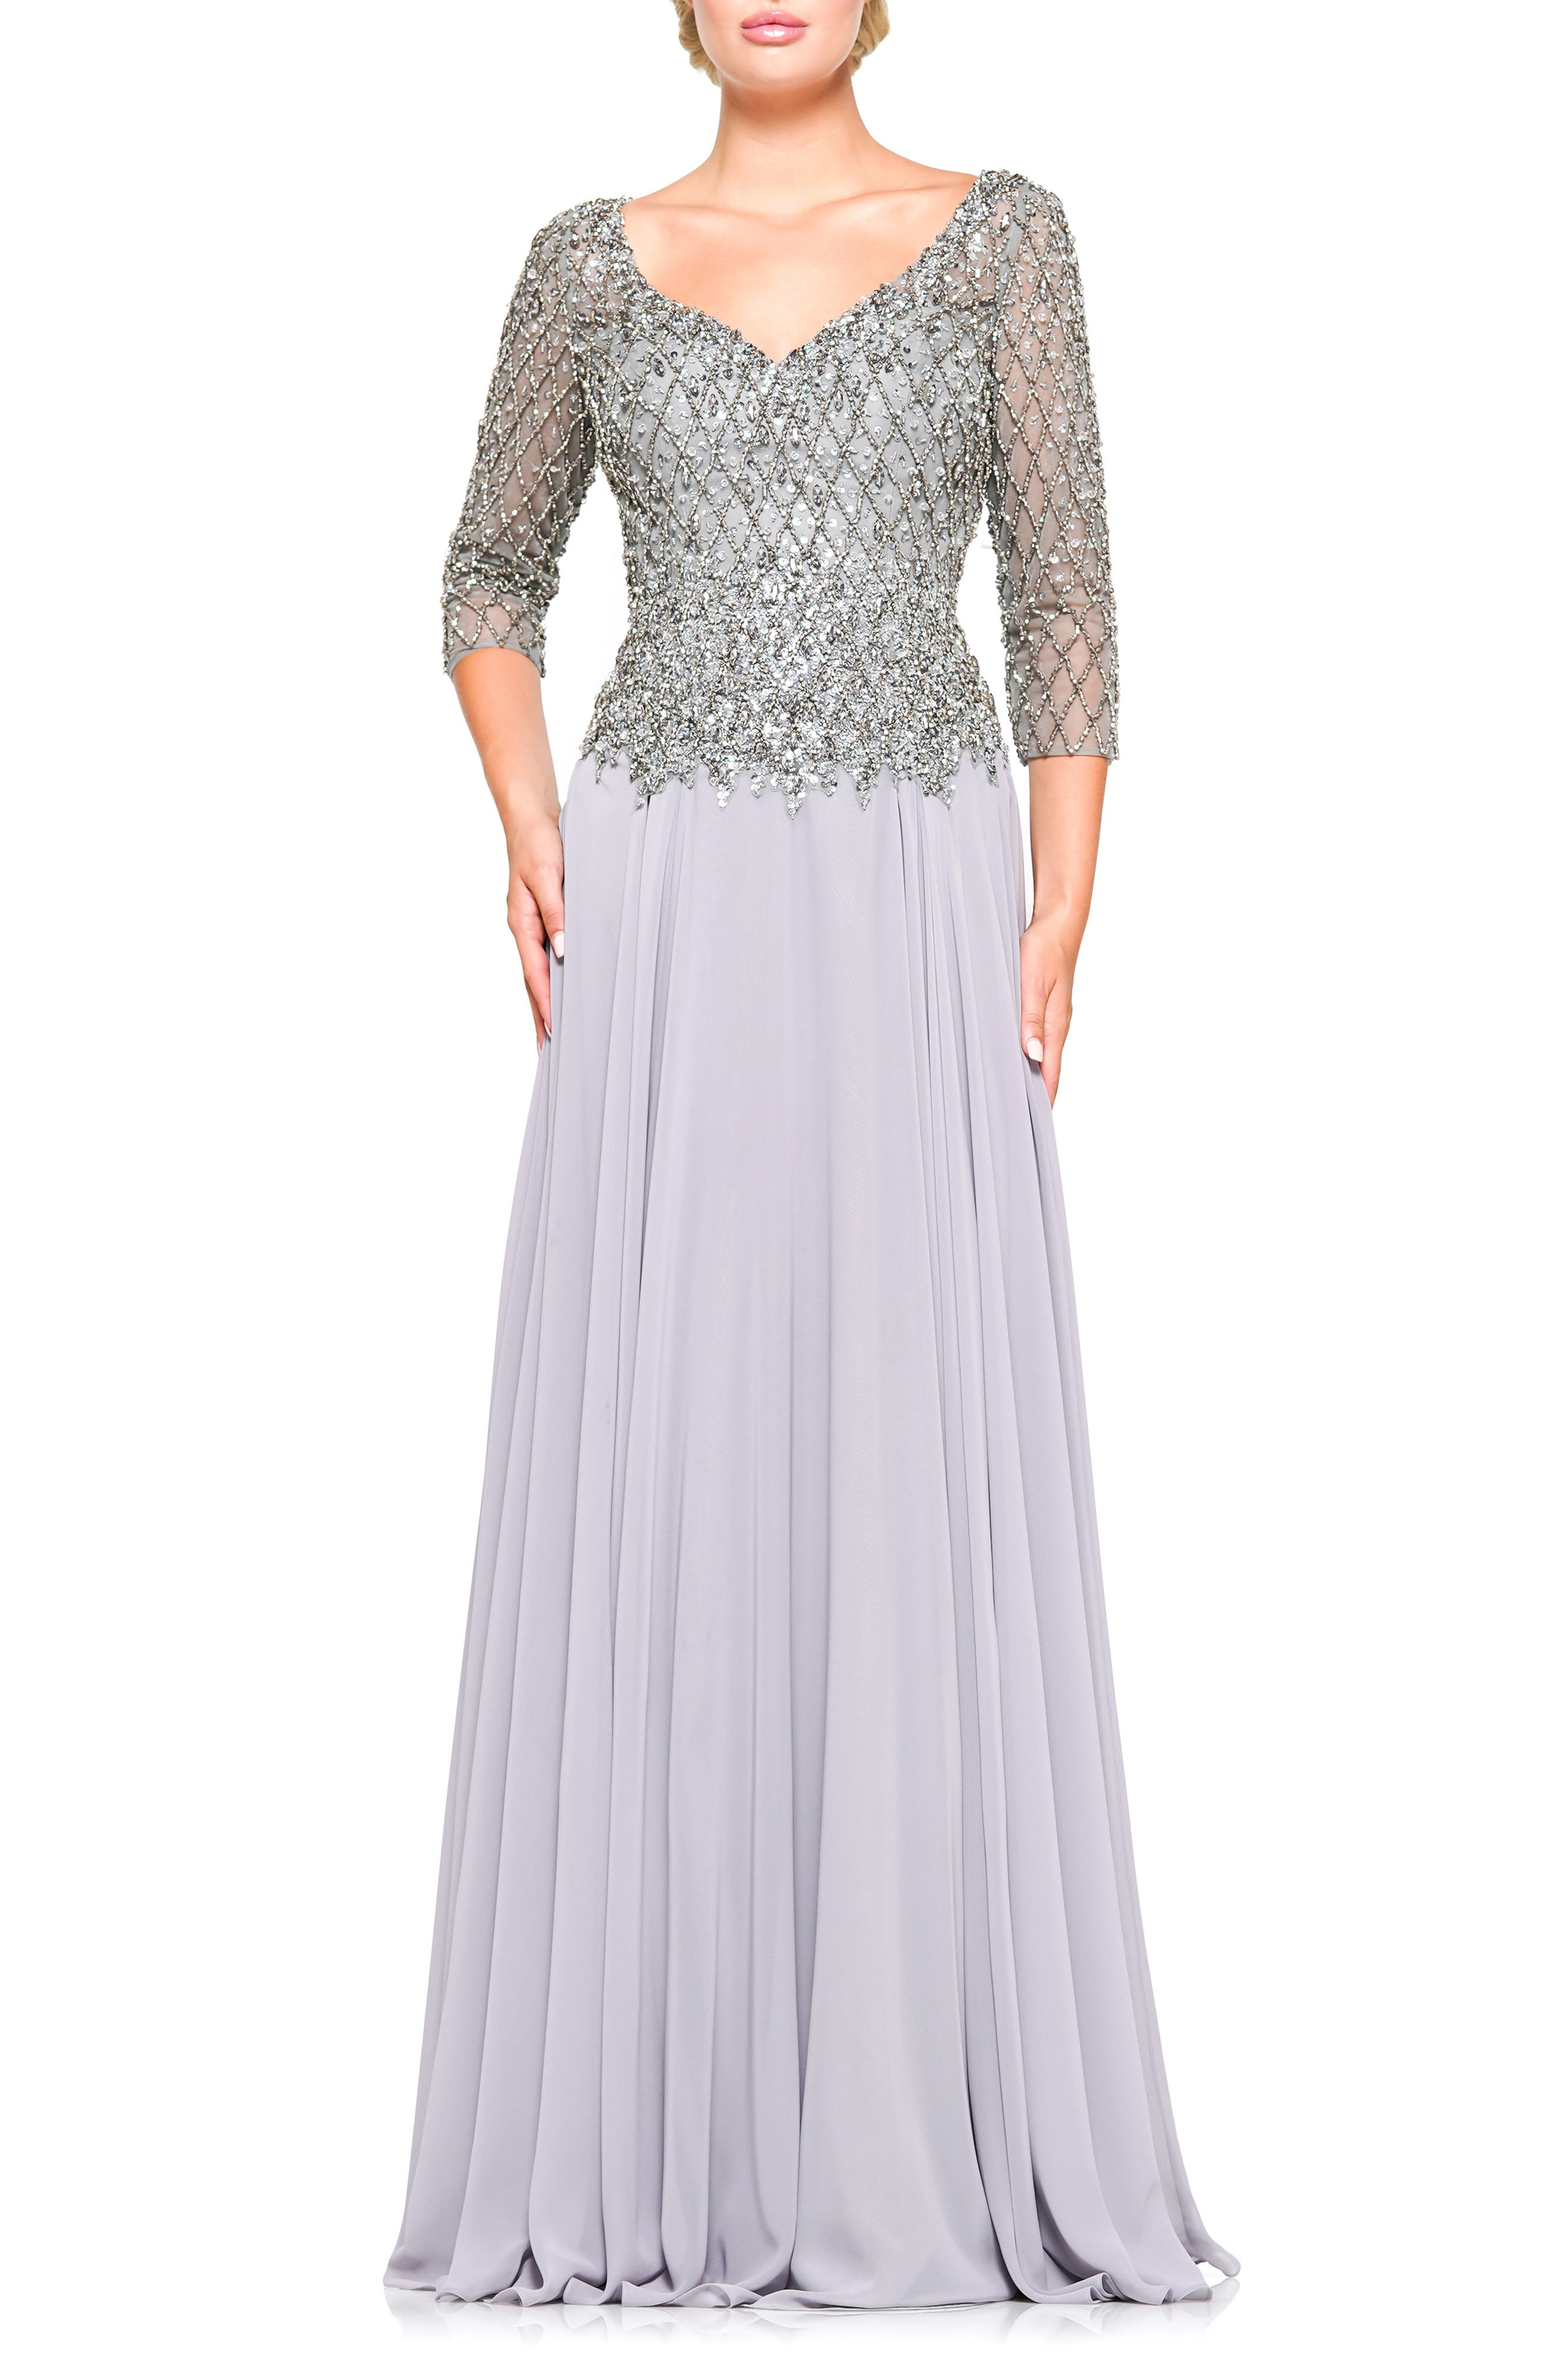 1940s Evening, Prom, Party, Formal, Ball Gowns Womens Marsoni Embellished Chiffon A-Line Gown $372.00 AT vintagedancer.com